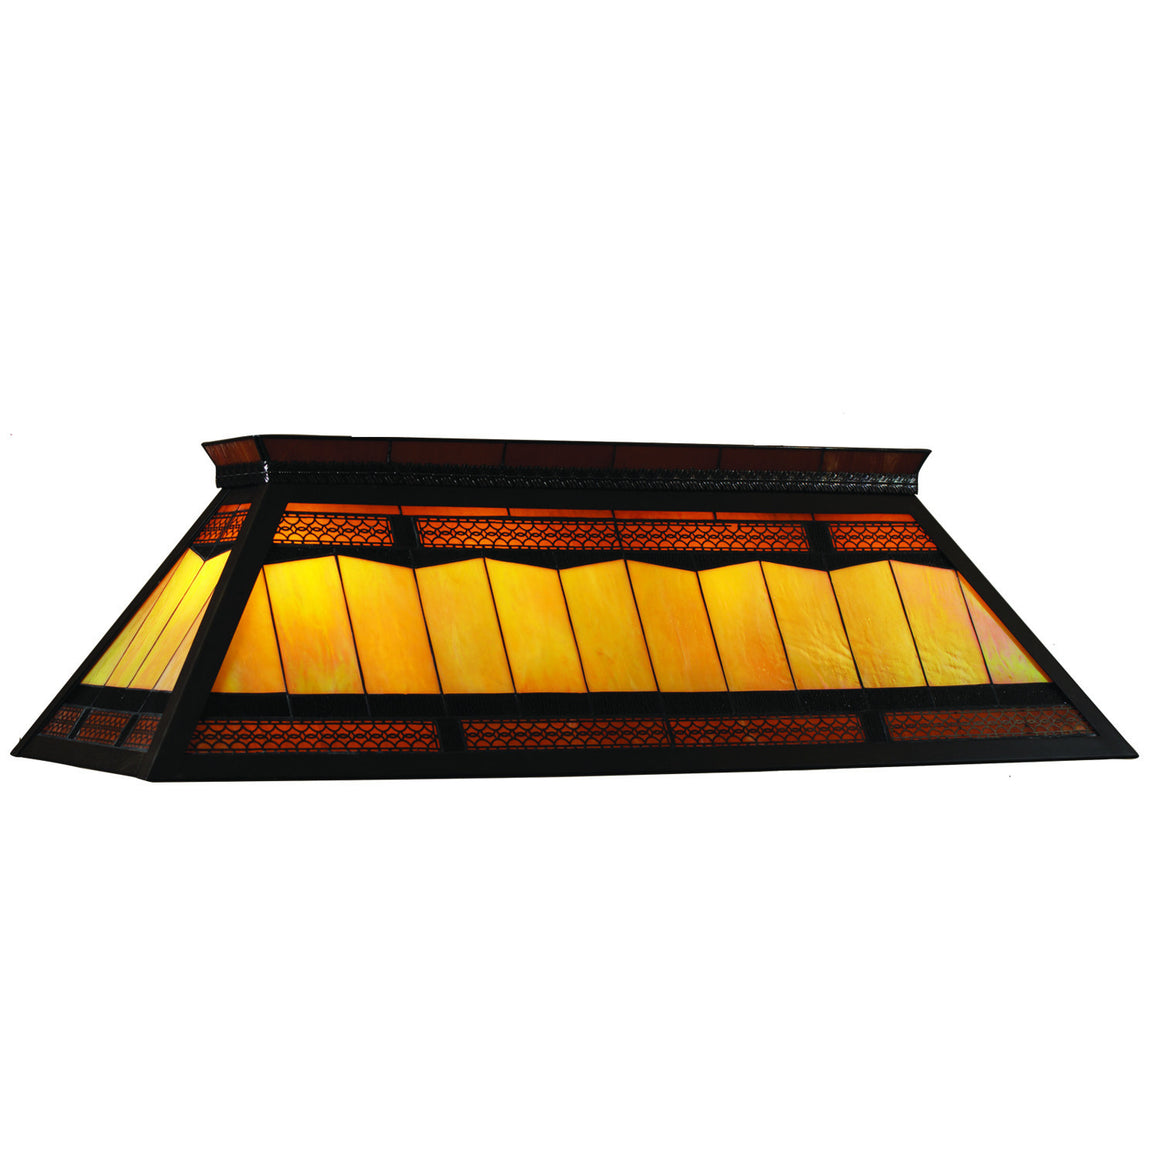 Billiards Lighting_Knockdown Stained Glass 4-Light Fixture_Filigree Finish - Man Cave Boutique